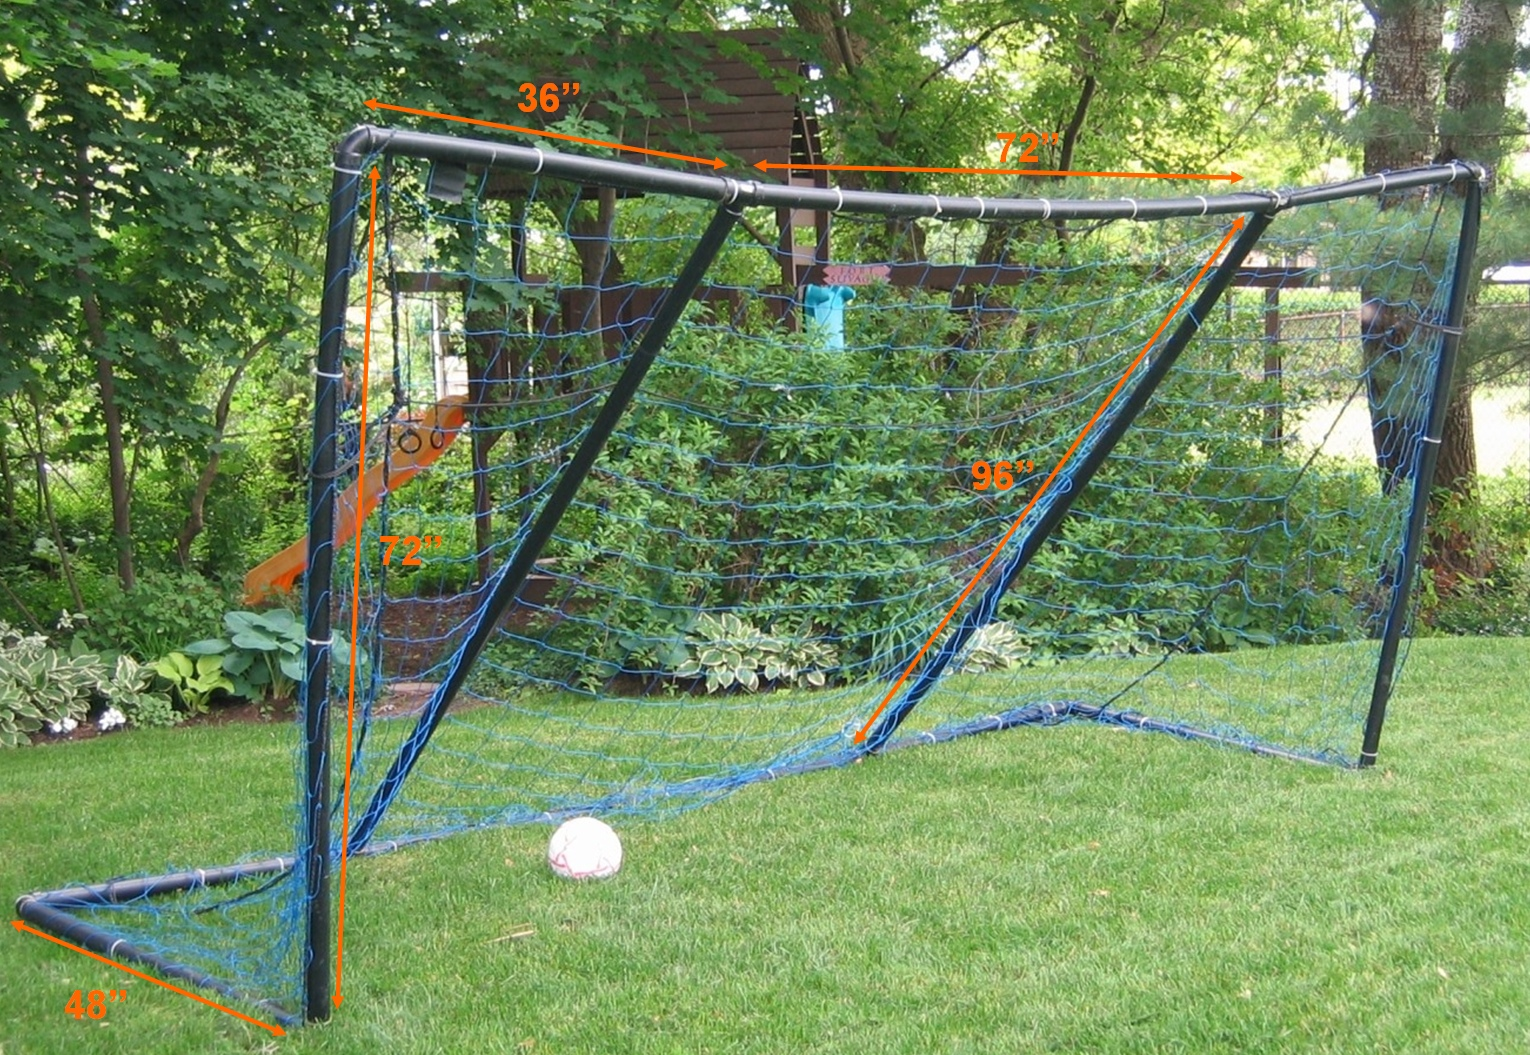 how to make a homemade soccer goal out of pvc pipe